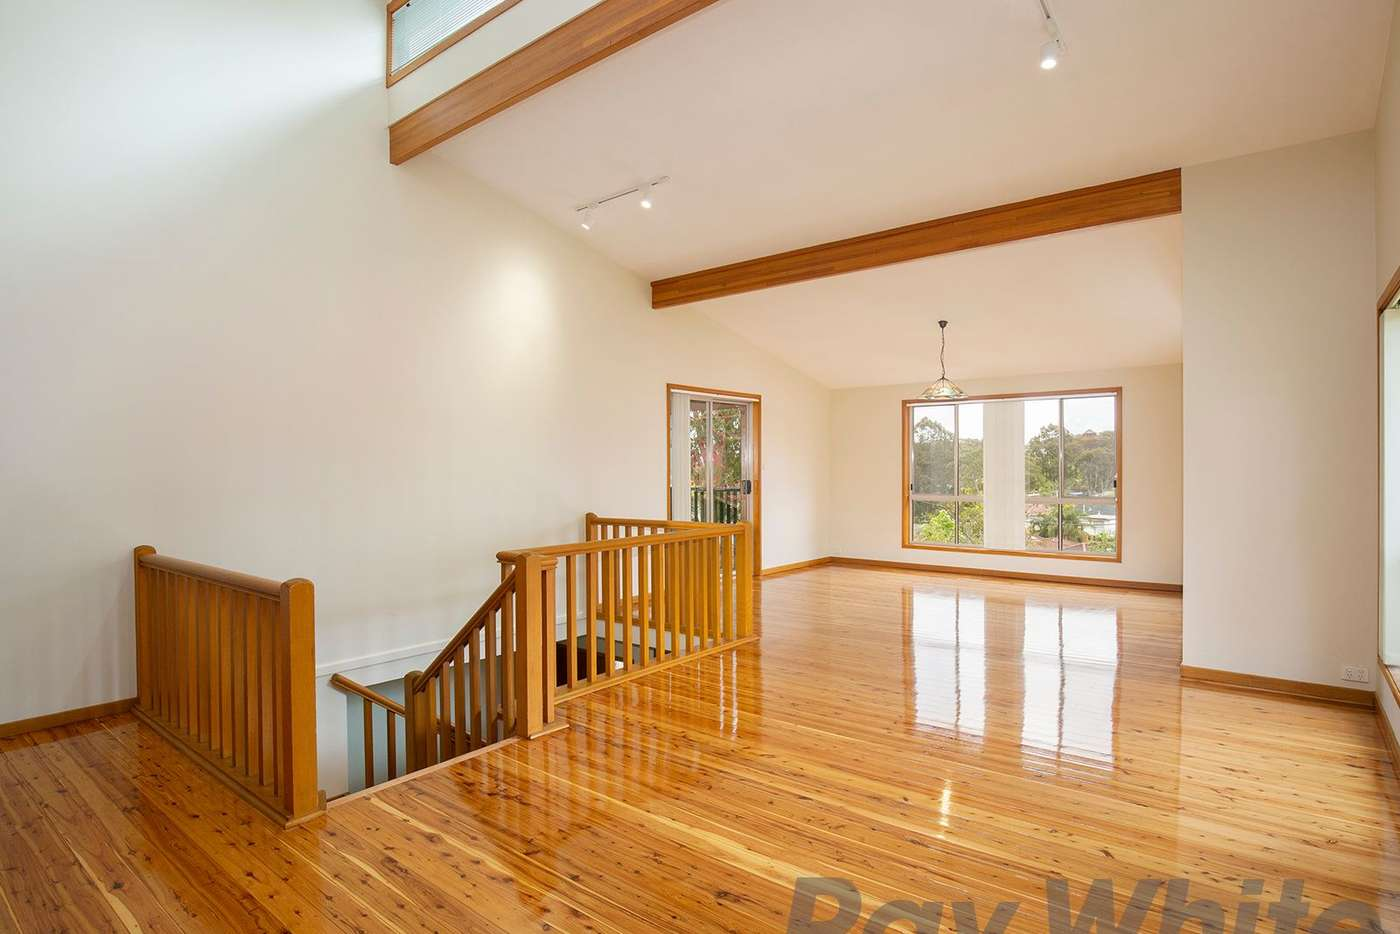 Main view of Homely house listing, 19 Andrew Close, North Lambton NSW 2299